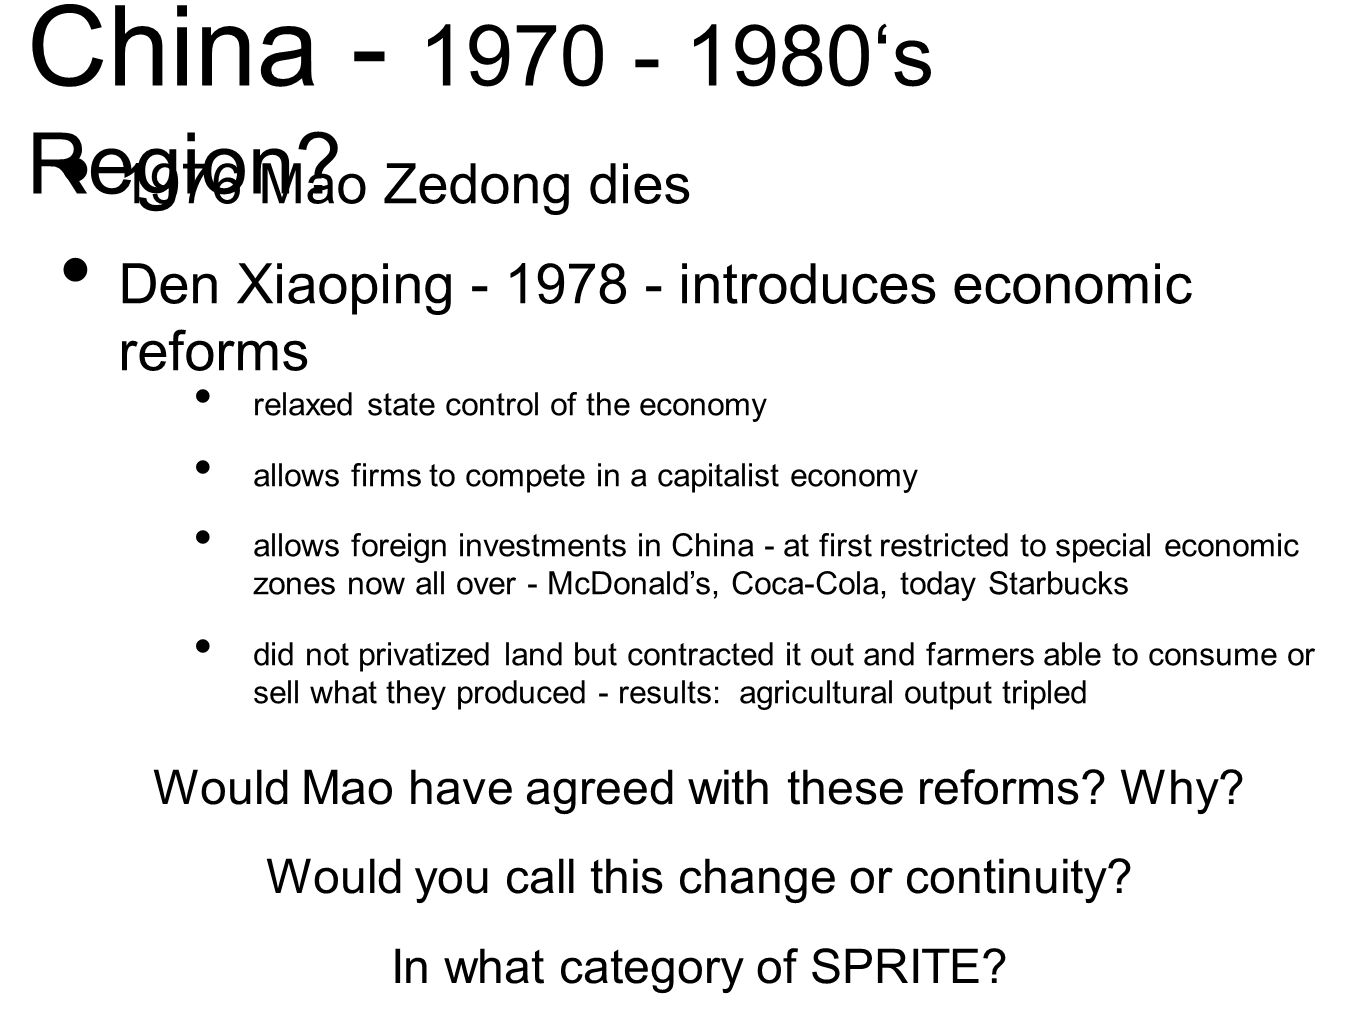 China - 1970 - 1980's Region? 1976 Mao Zedong dies Den Xiaoping - 1978 - introduces economic reforms Would Mao have agreed with these reforms? Why? Wo